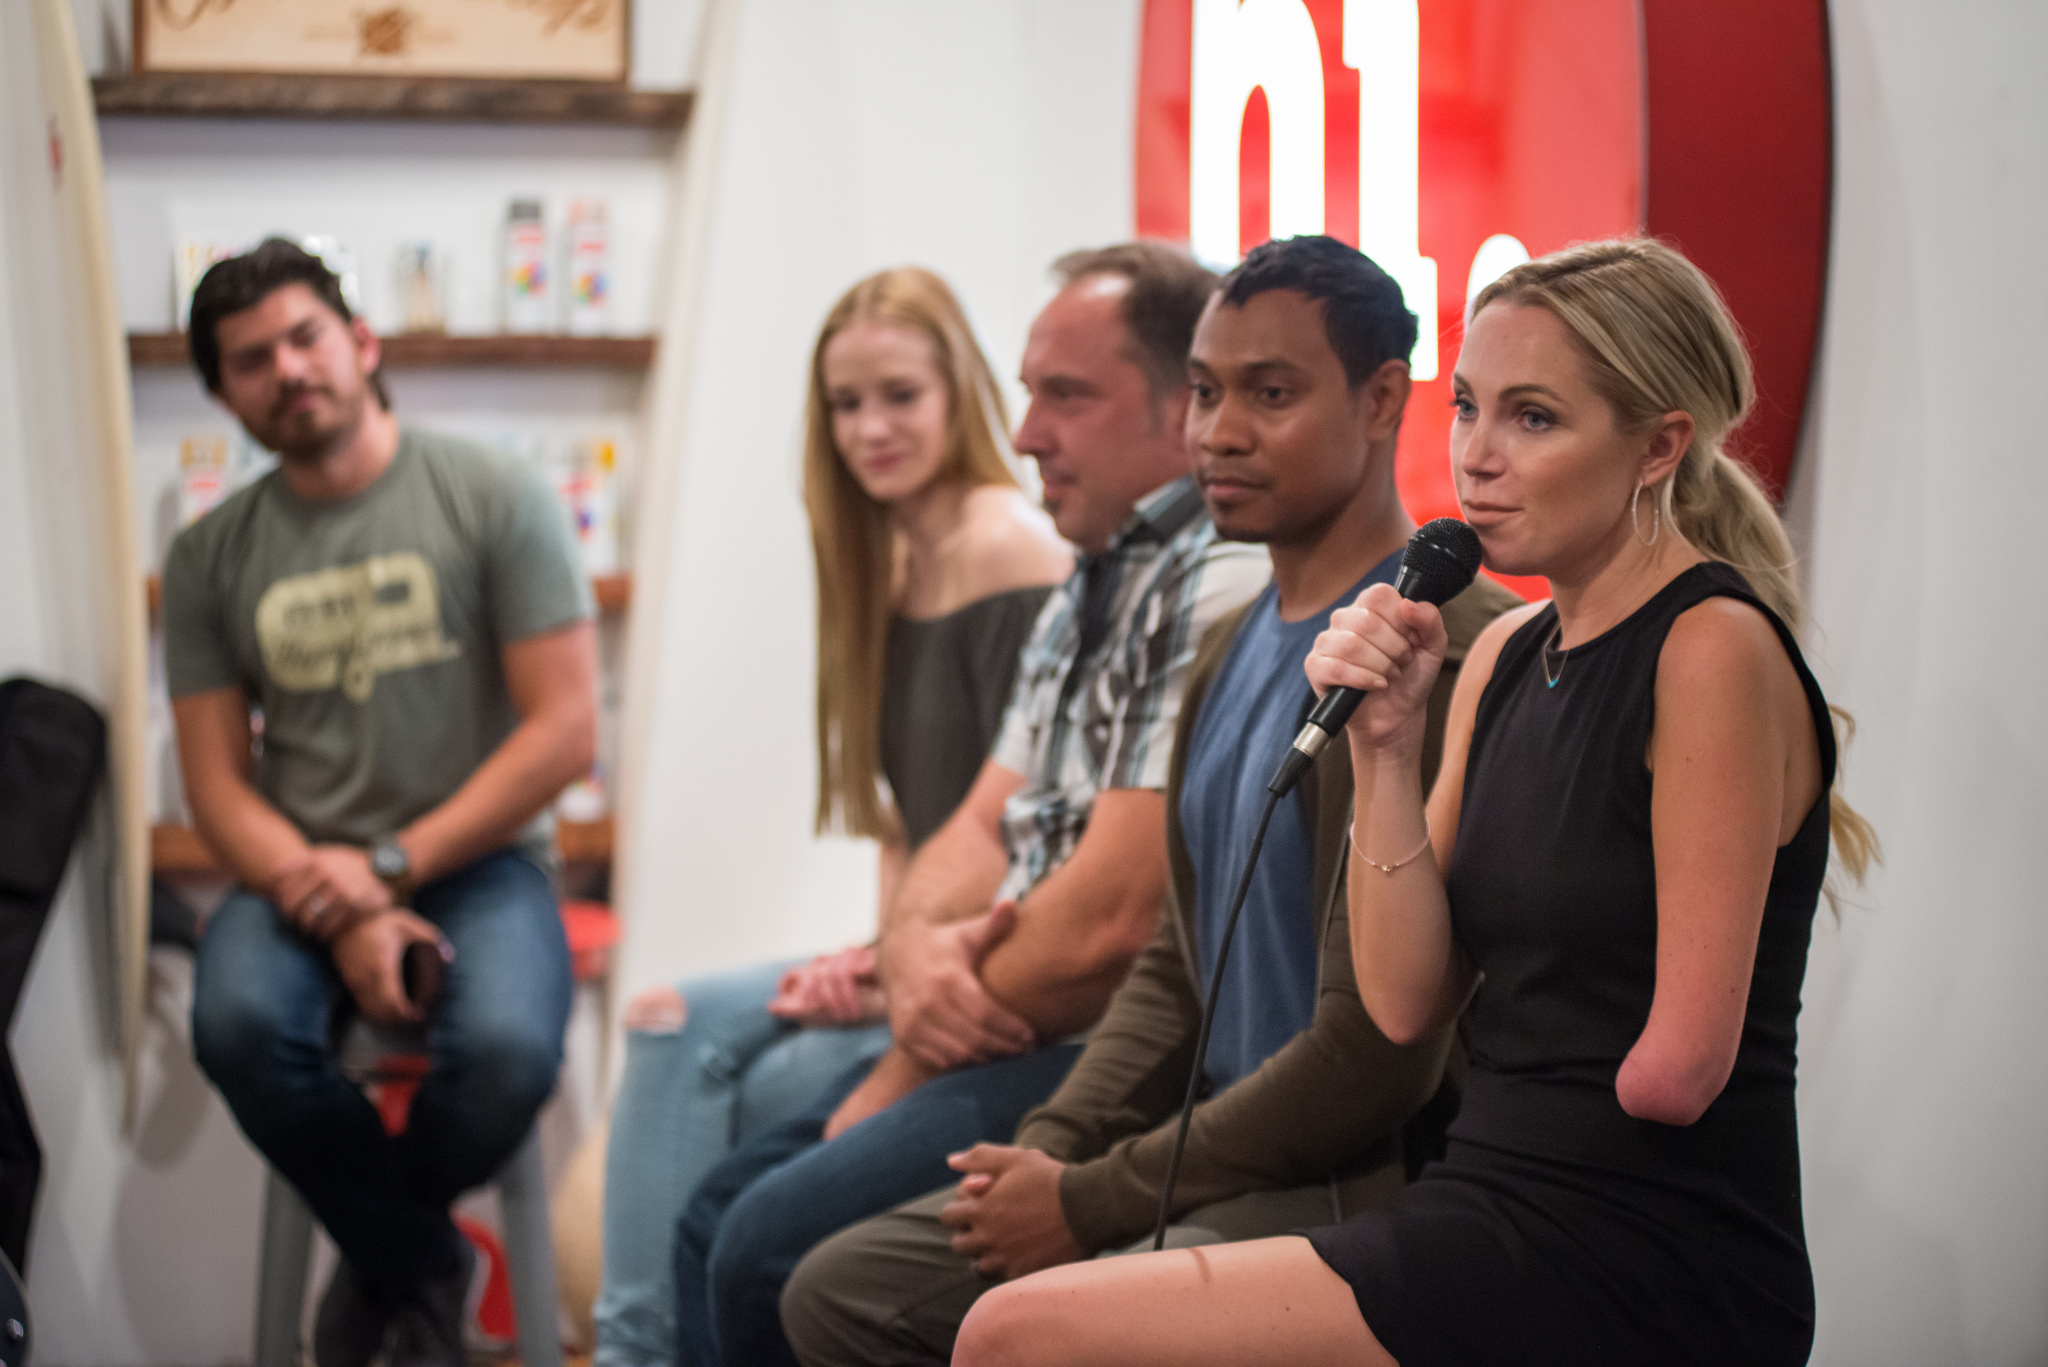 Innovative leaders talk about overcoming trials and hardships when they started their businesses at the first Silicon Coastal hosted in Venice, CA.